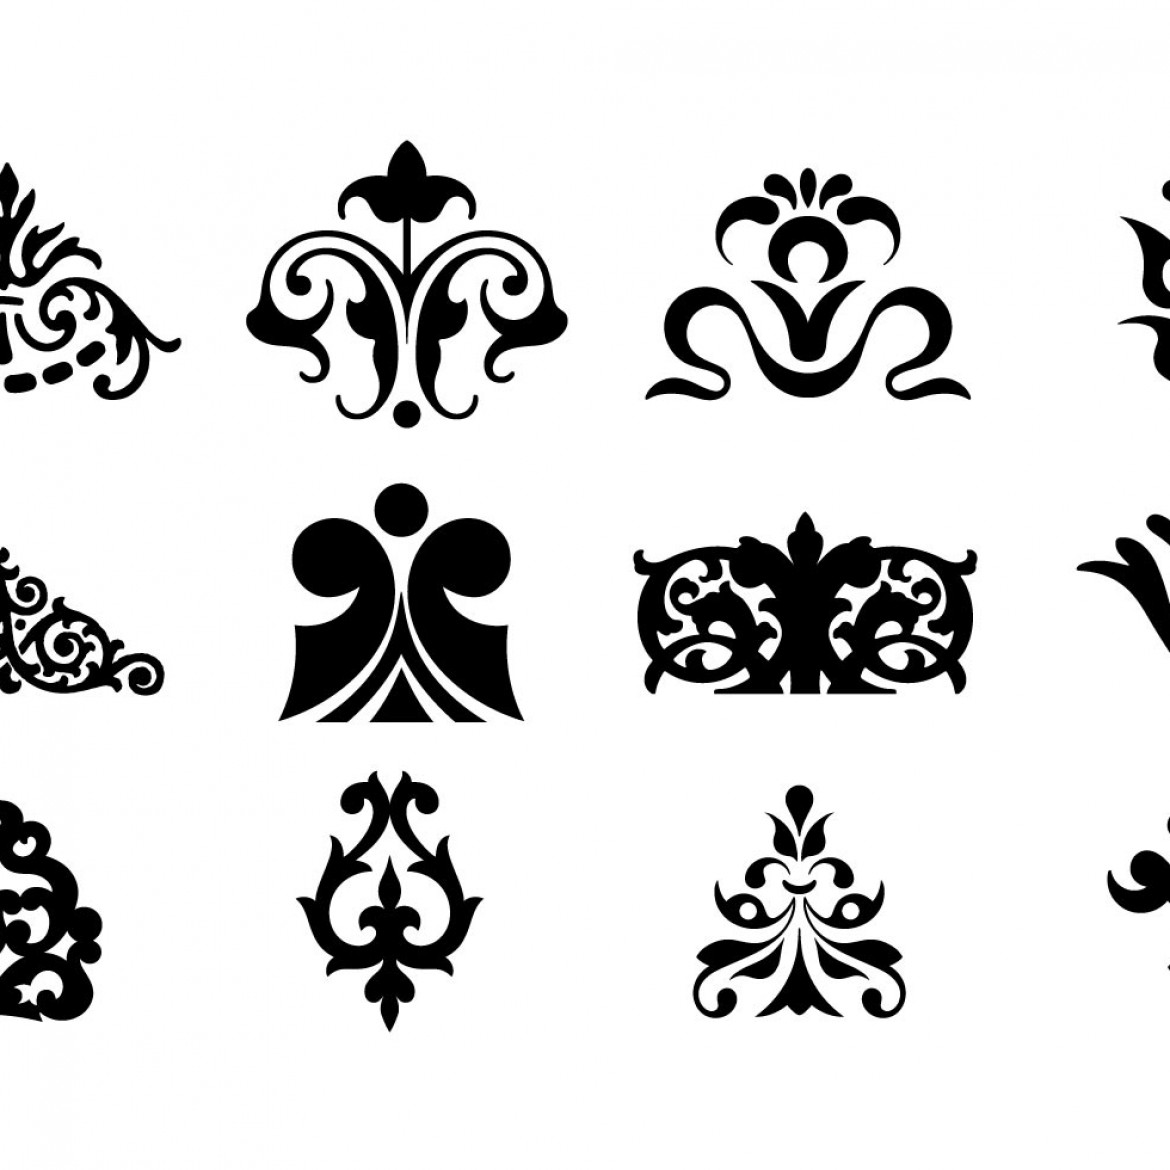 Free vector decorative ornaments for logo web and graphic for Design ornaments